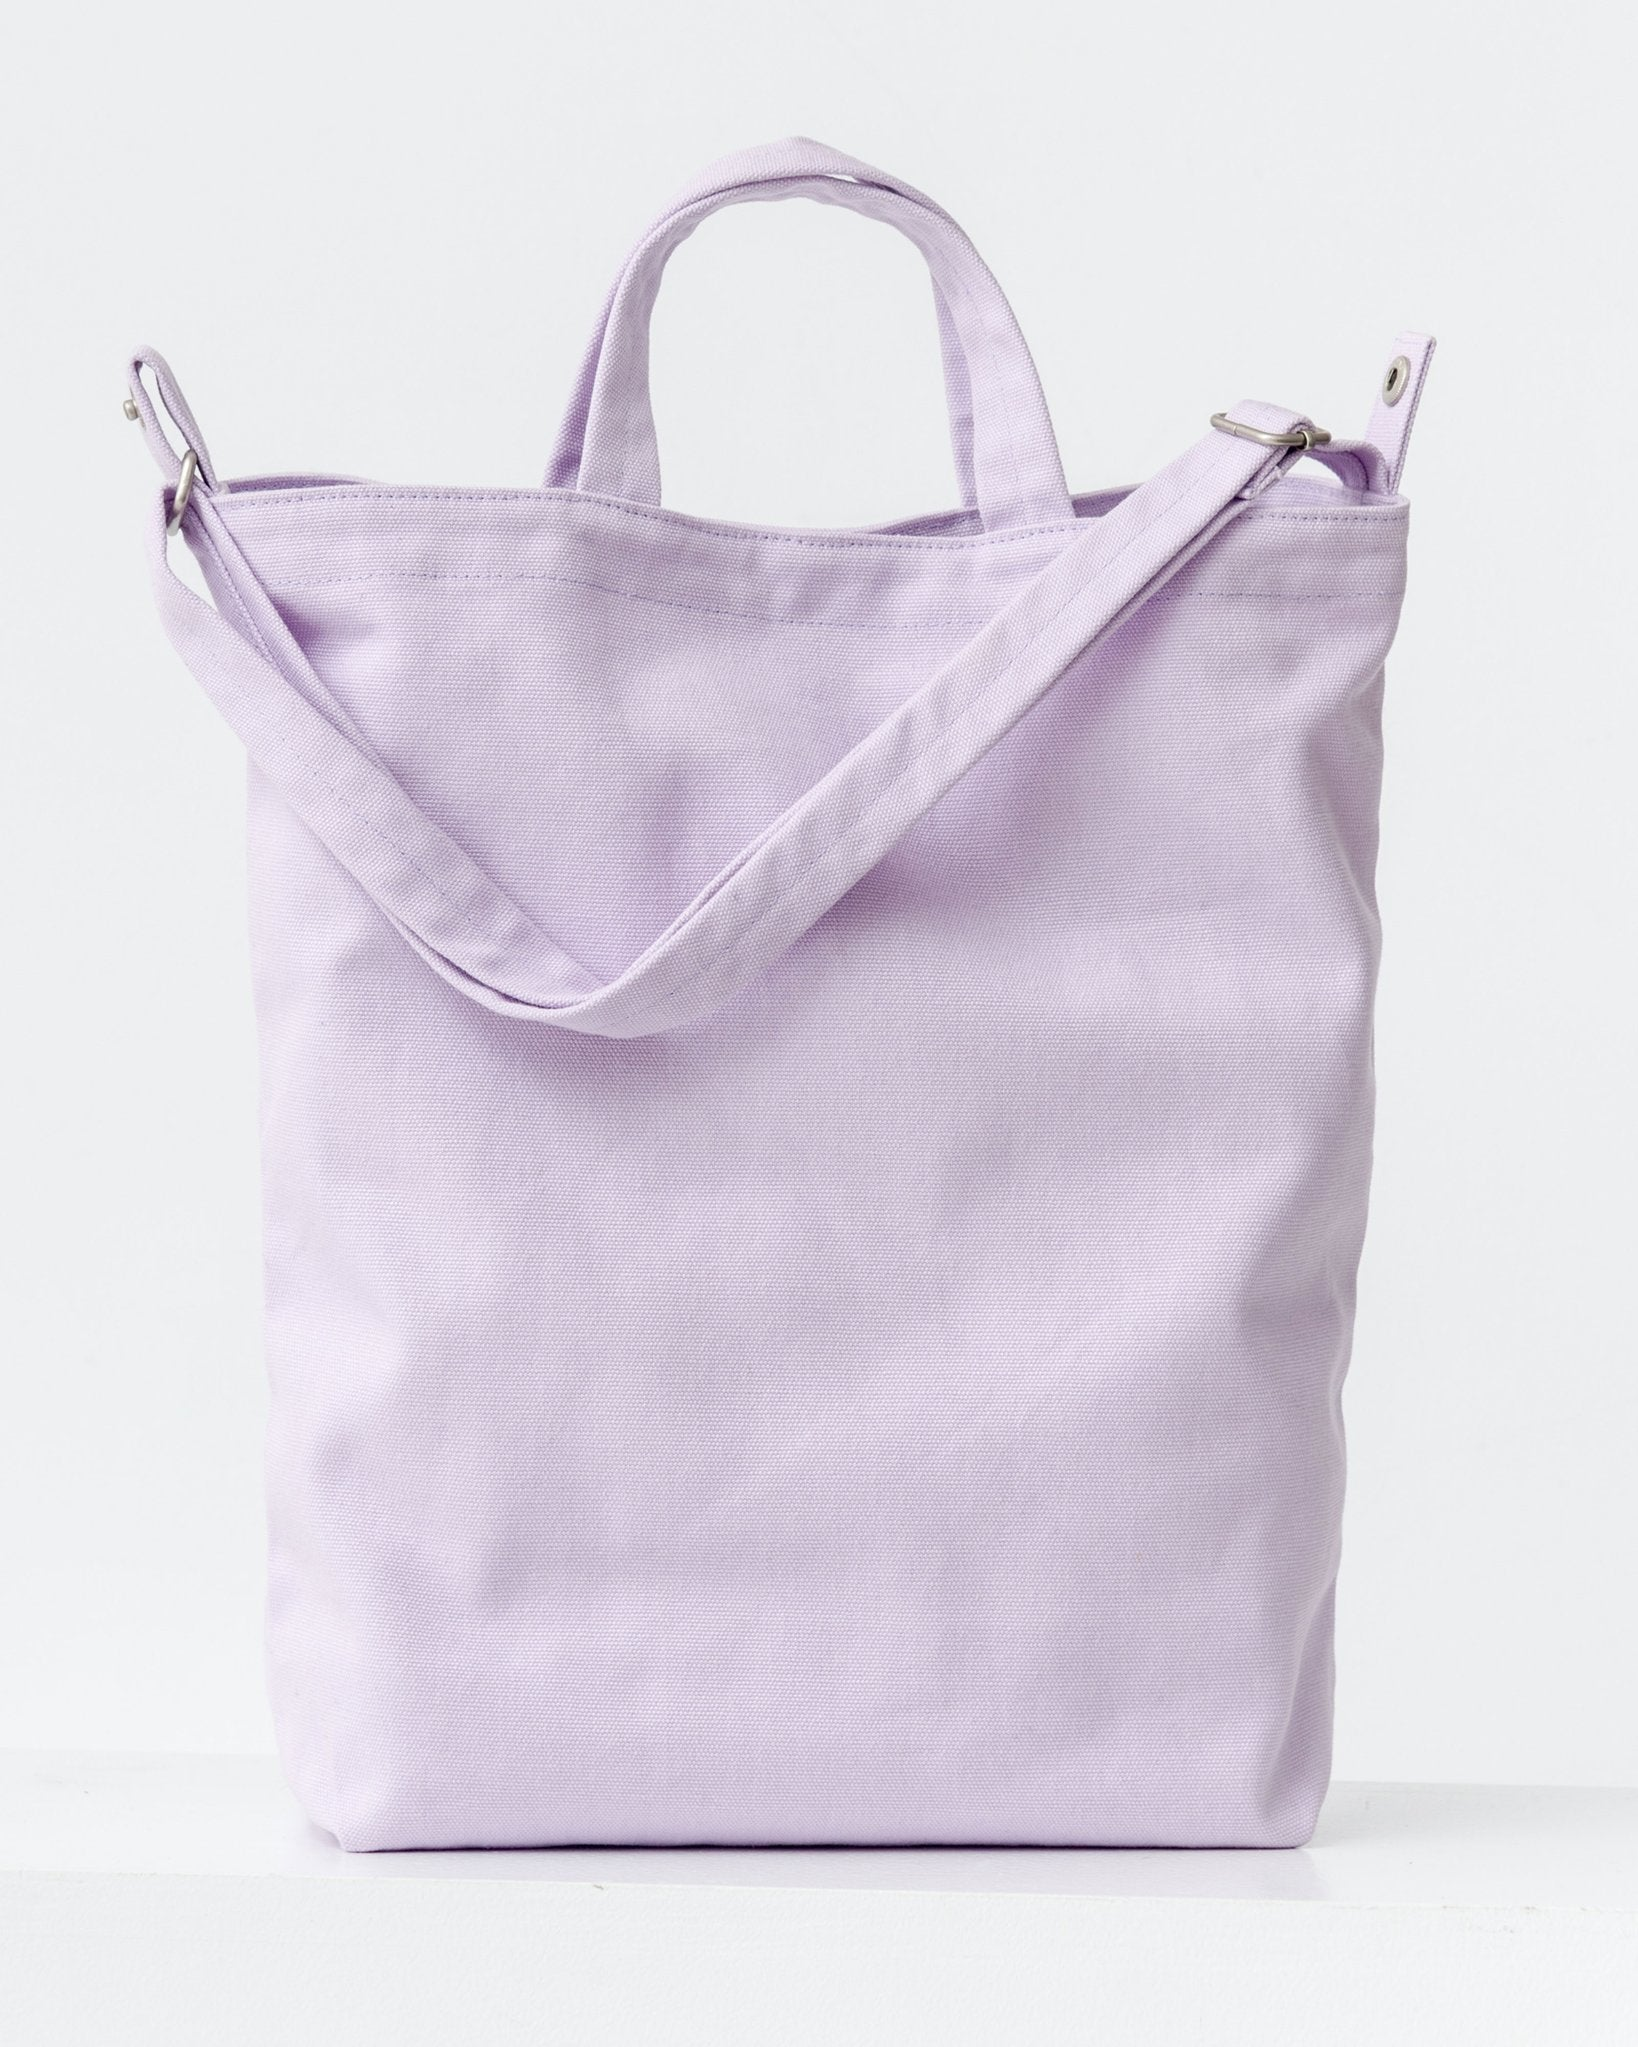 Duck Bag in Lilac